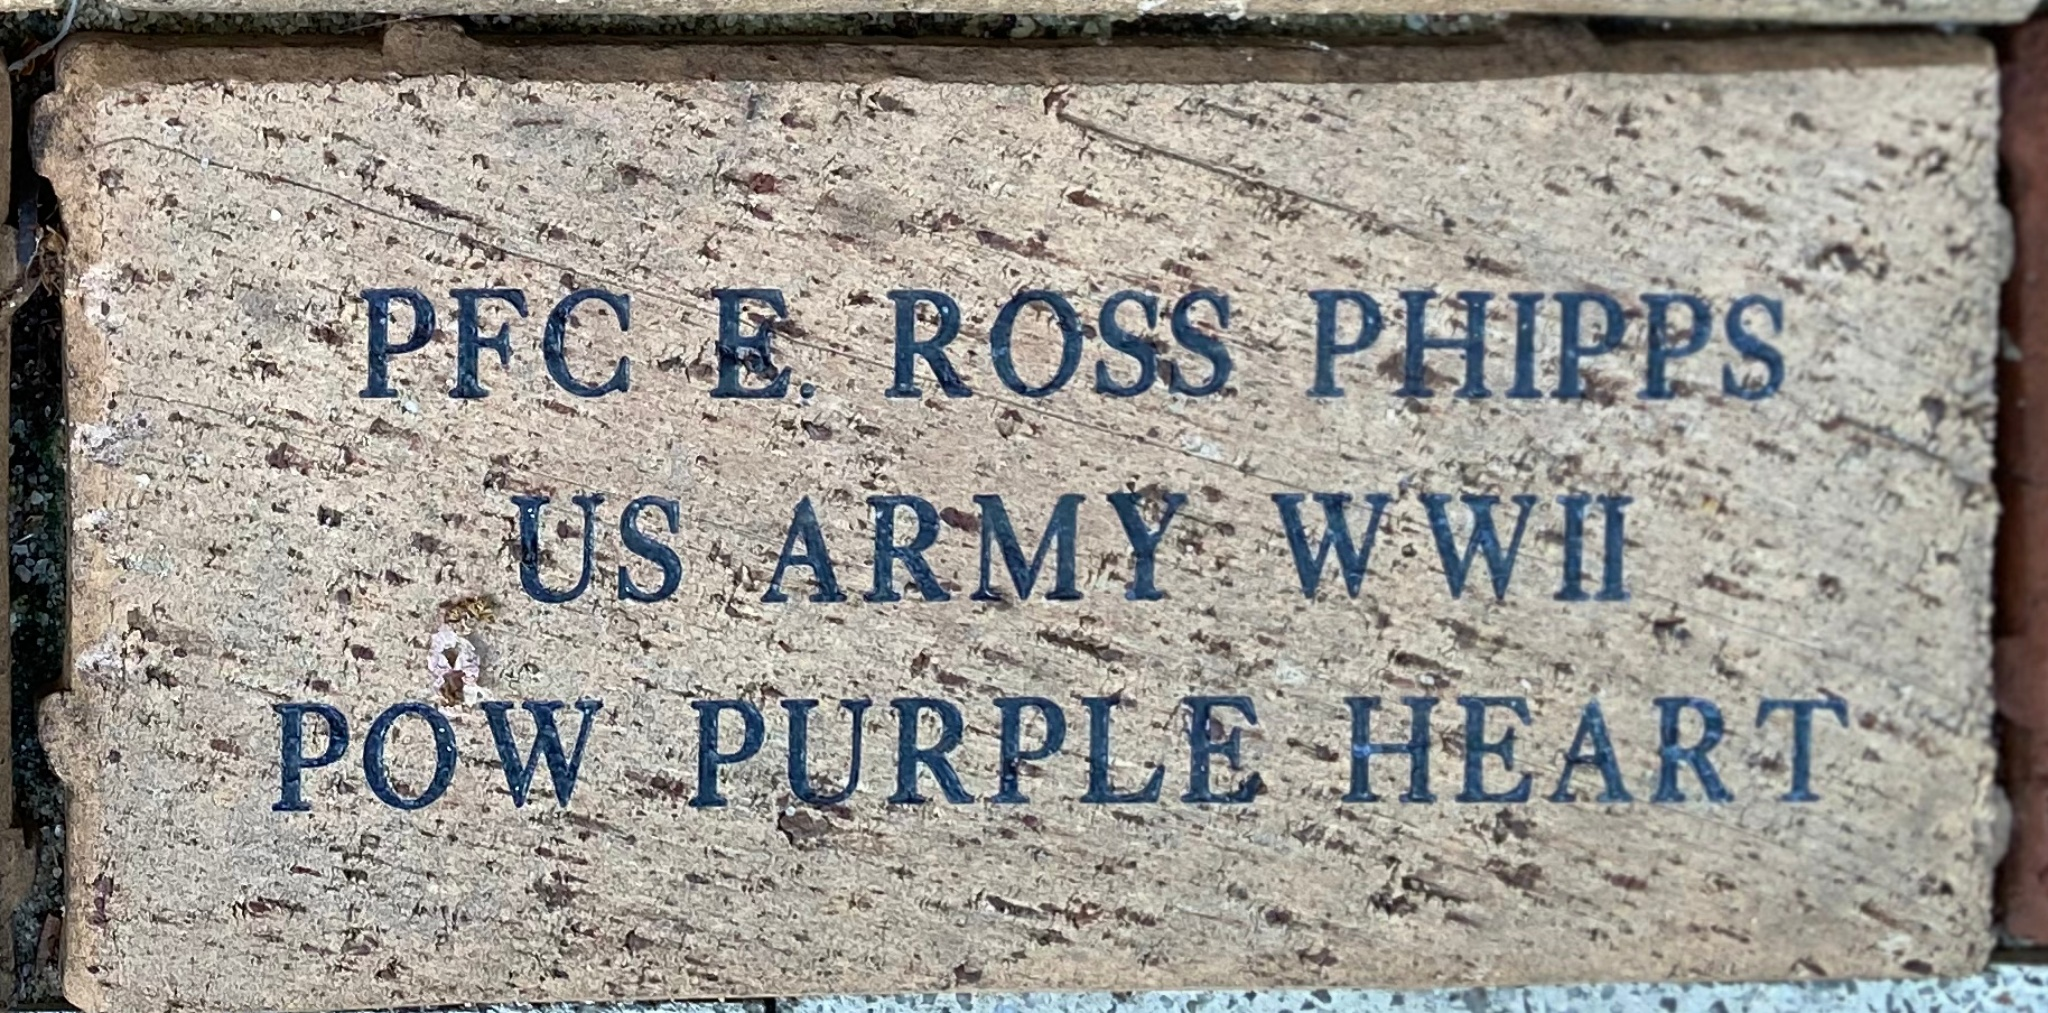 PFC E. ROSS PHIPPS US ARMY WWII POW PURPLE HEART